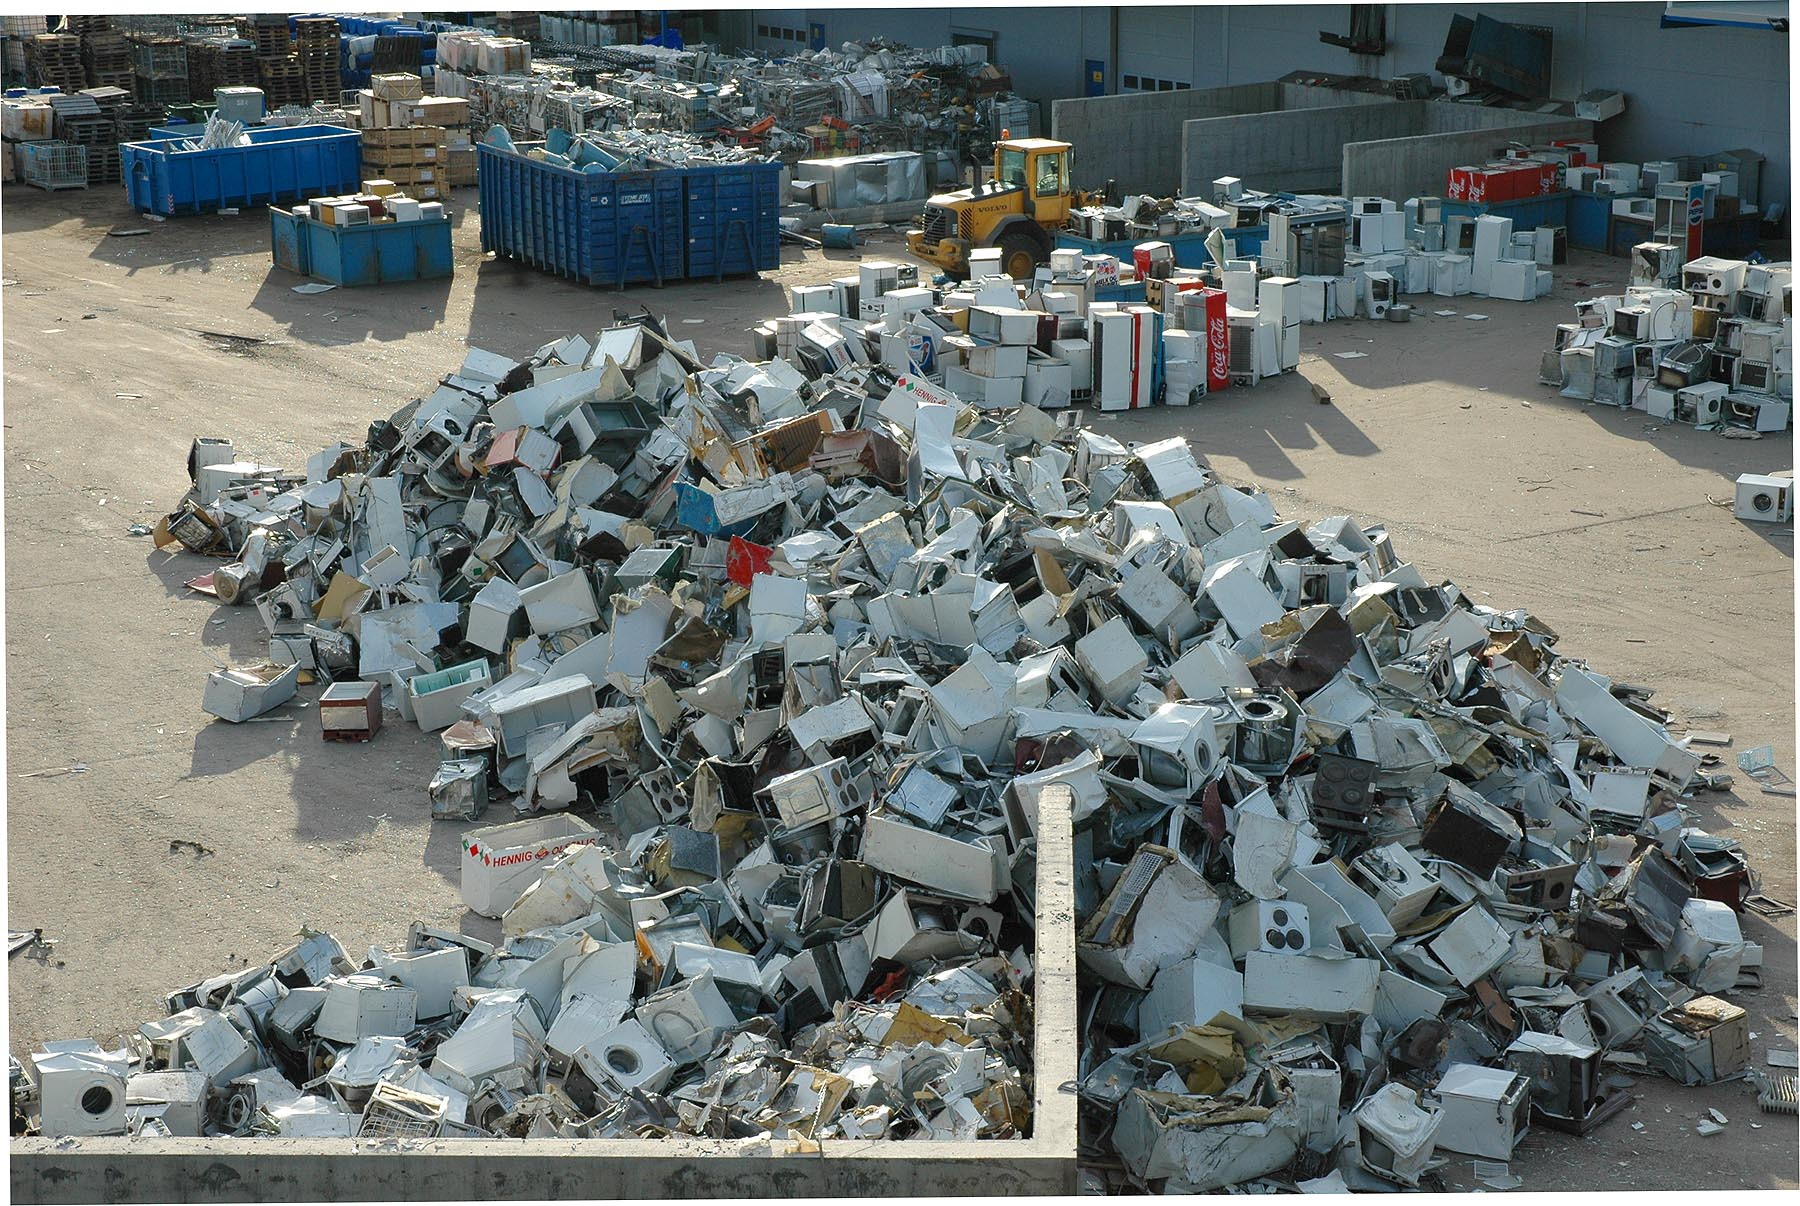 Better access needed to millions of discarded re-usable goods says EU study